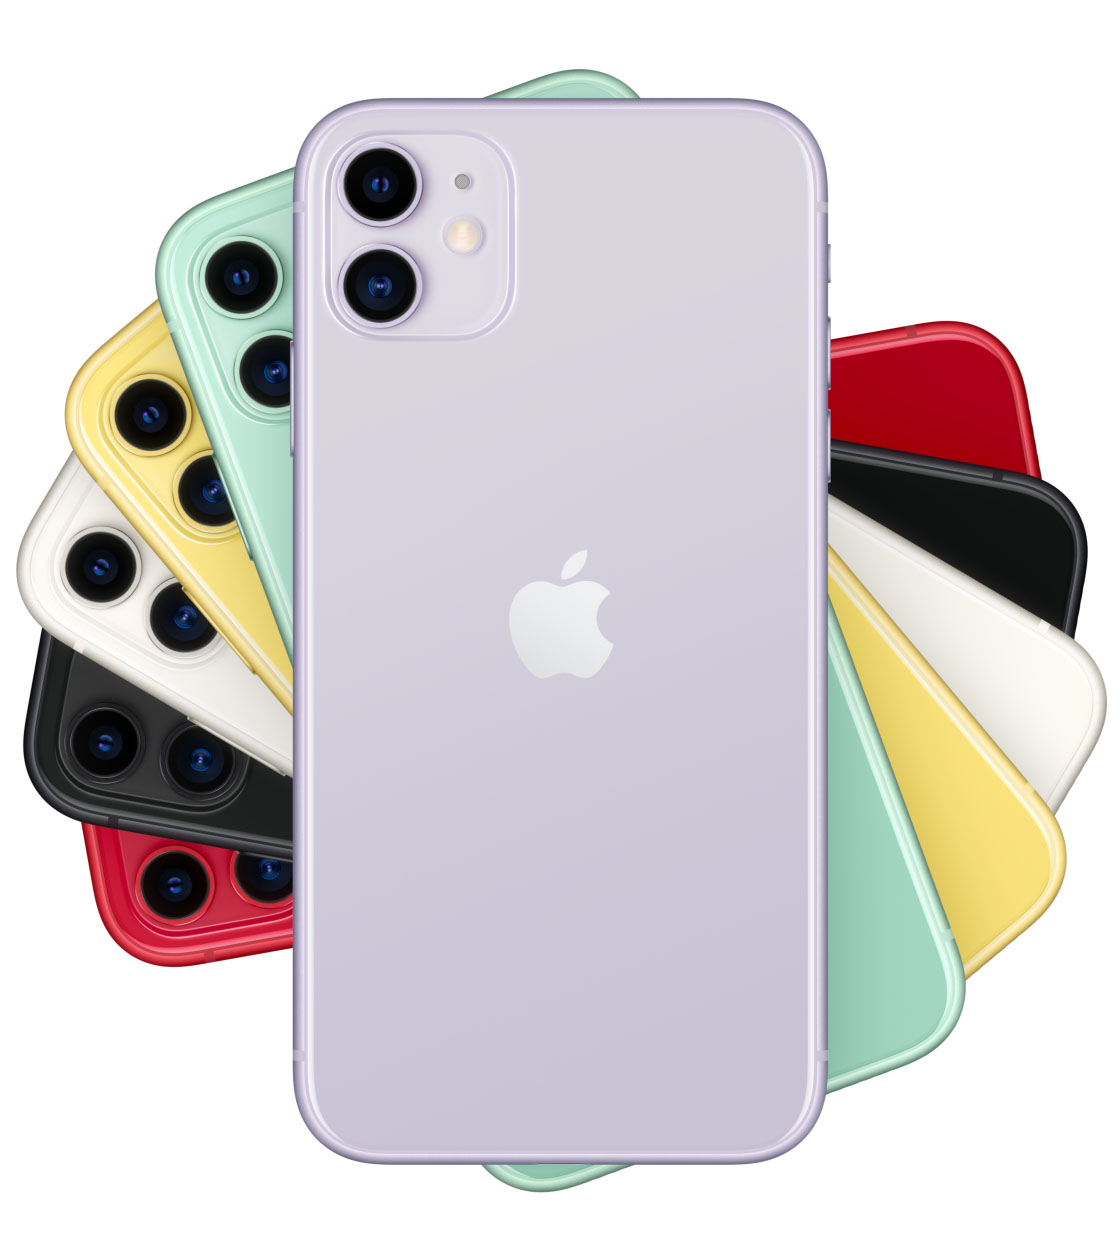 iPhone 11 demand reportedly better than expected, green and